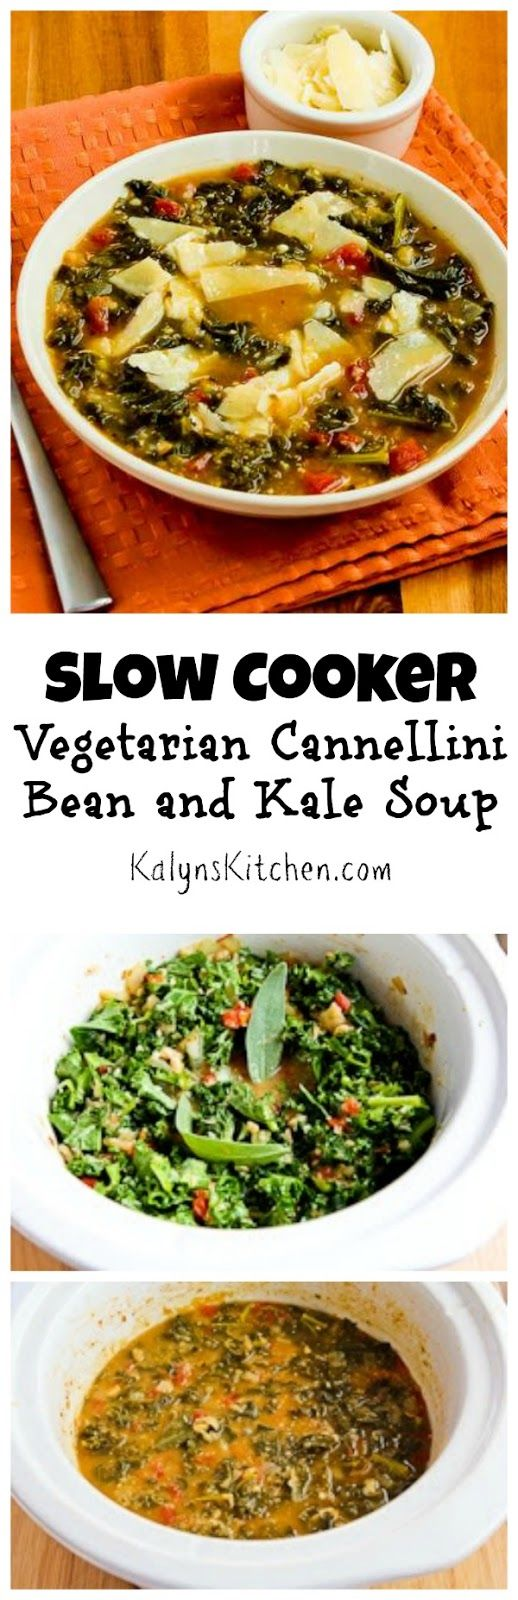 this Slow Cooker Vegetarian Cannellini Bean and Kale Soup with Shaved ...